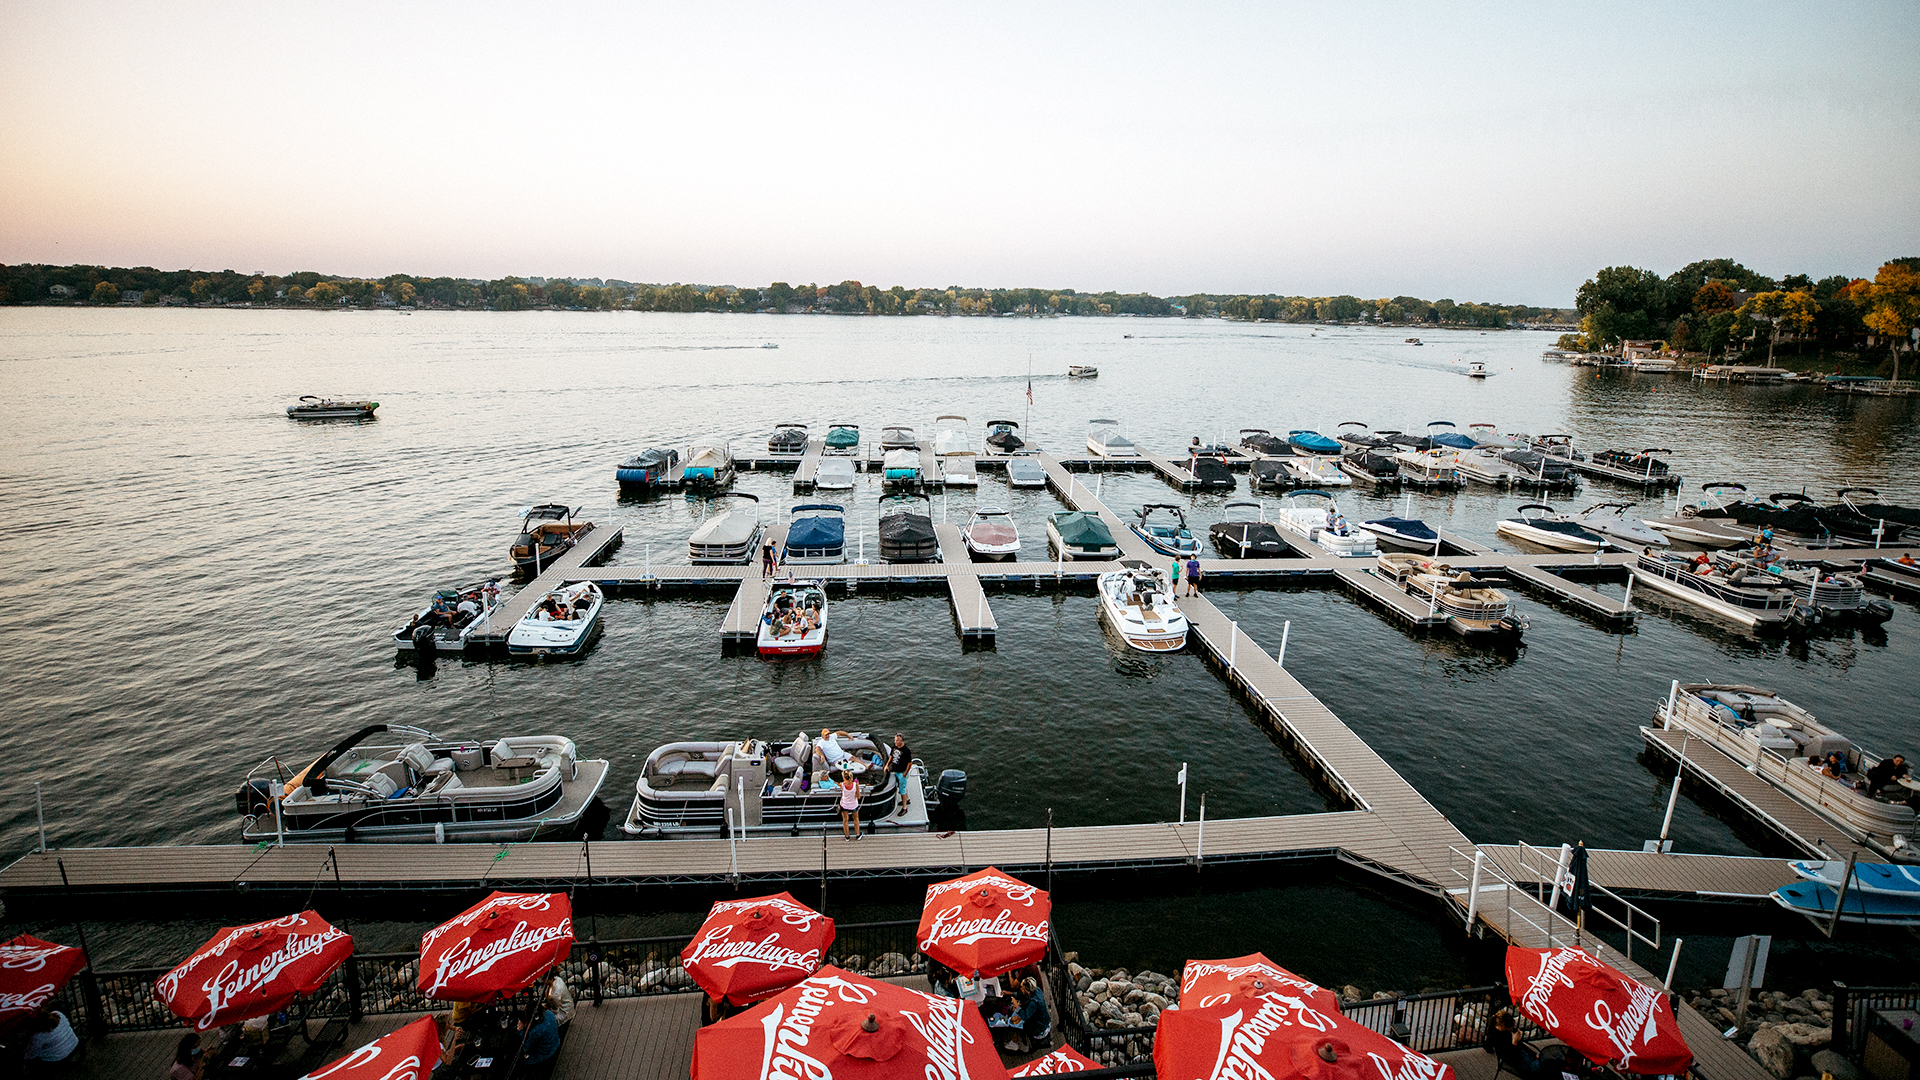 Large commercial floating dock at a lakeside restaurant